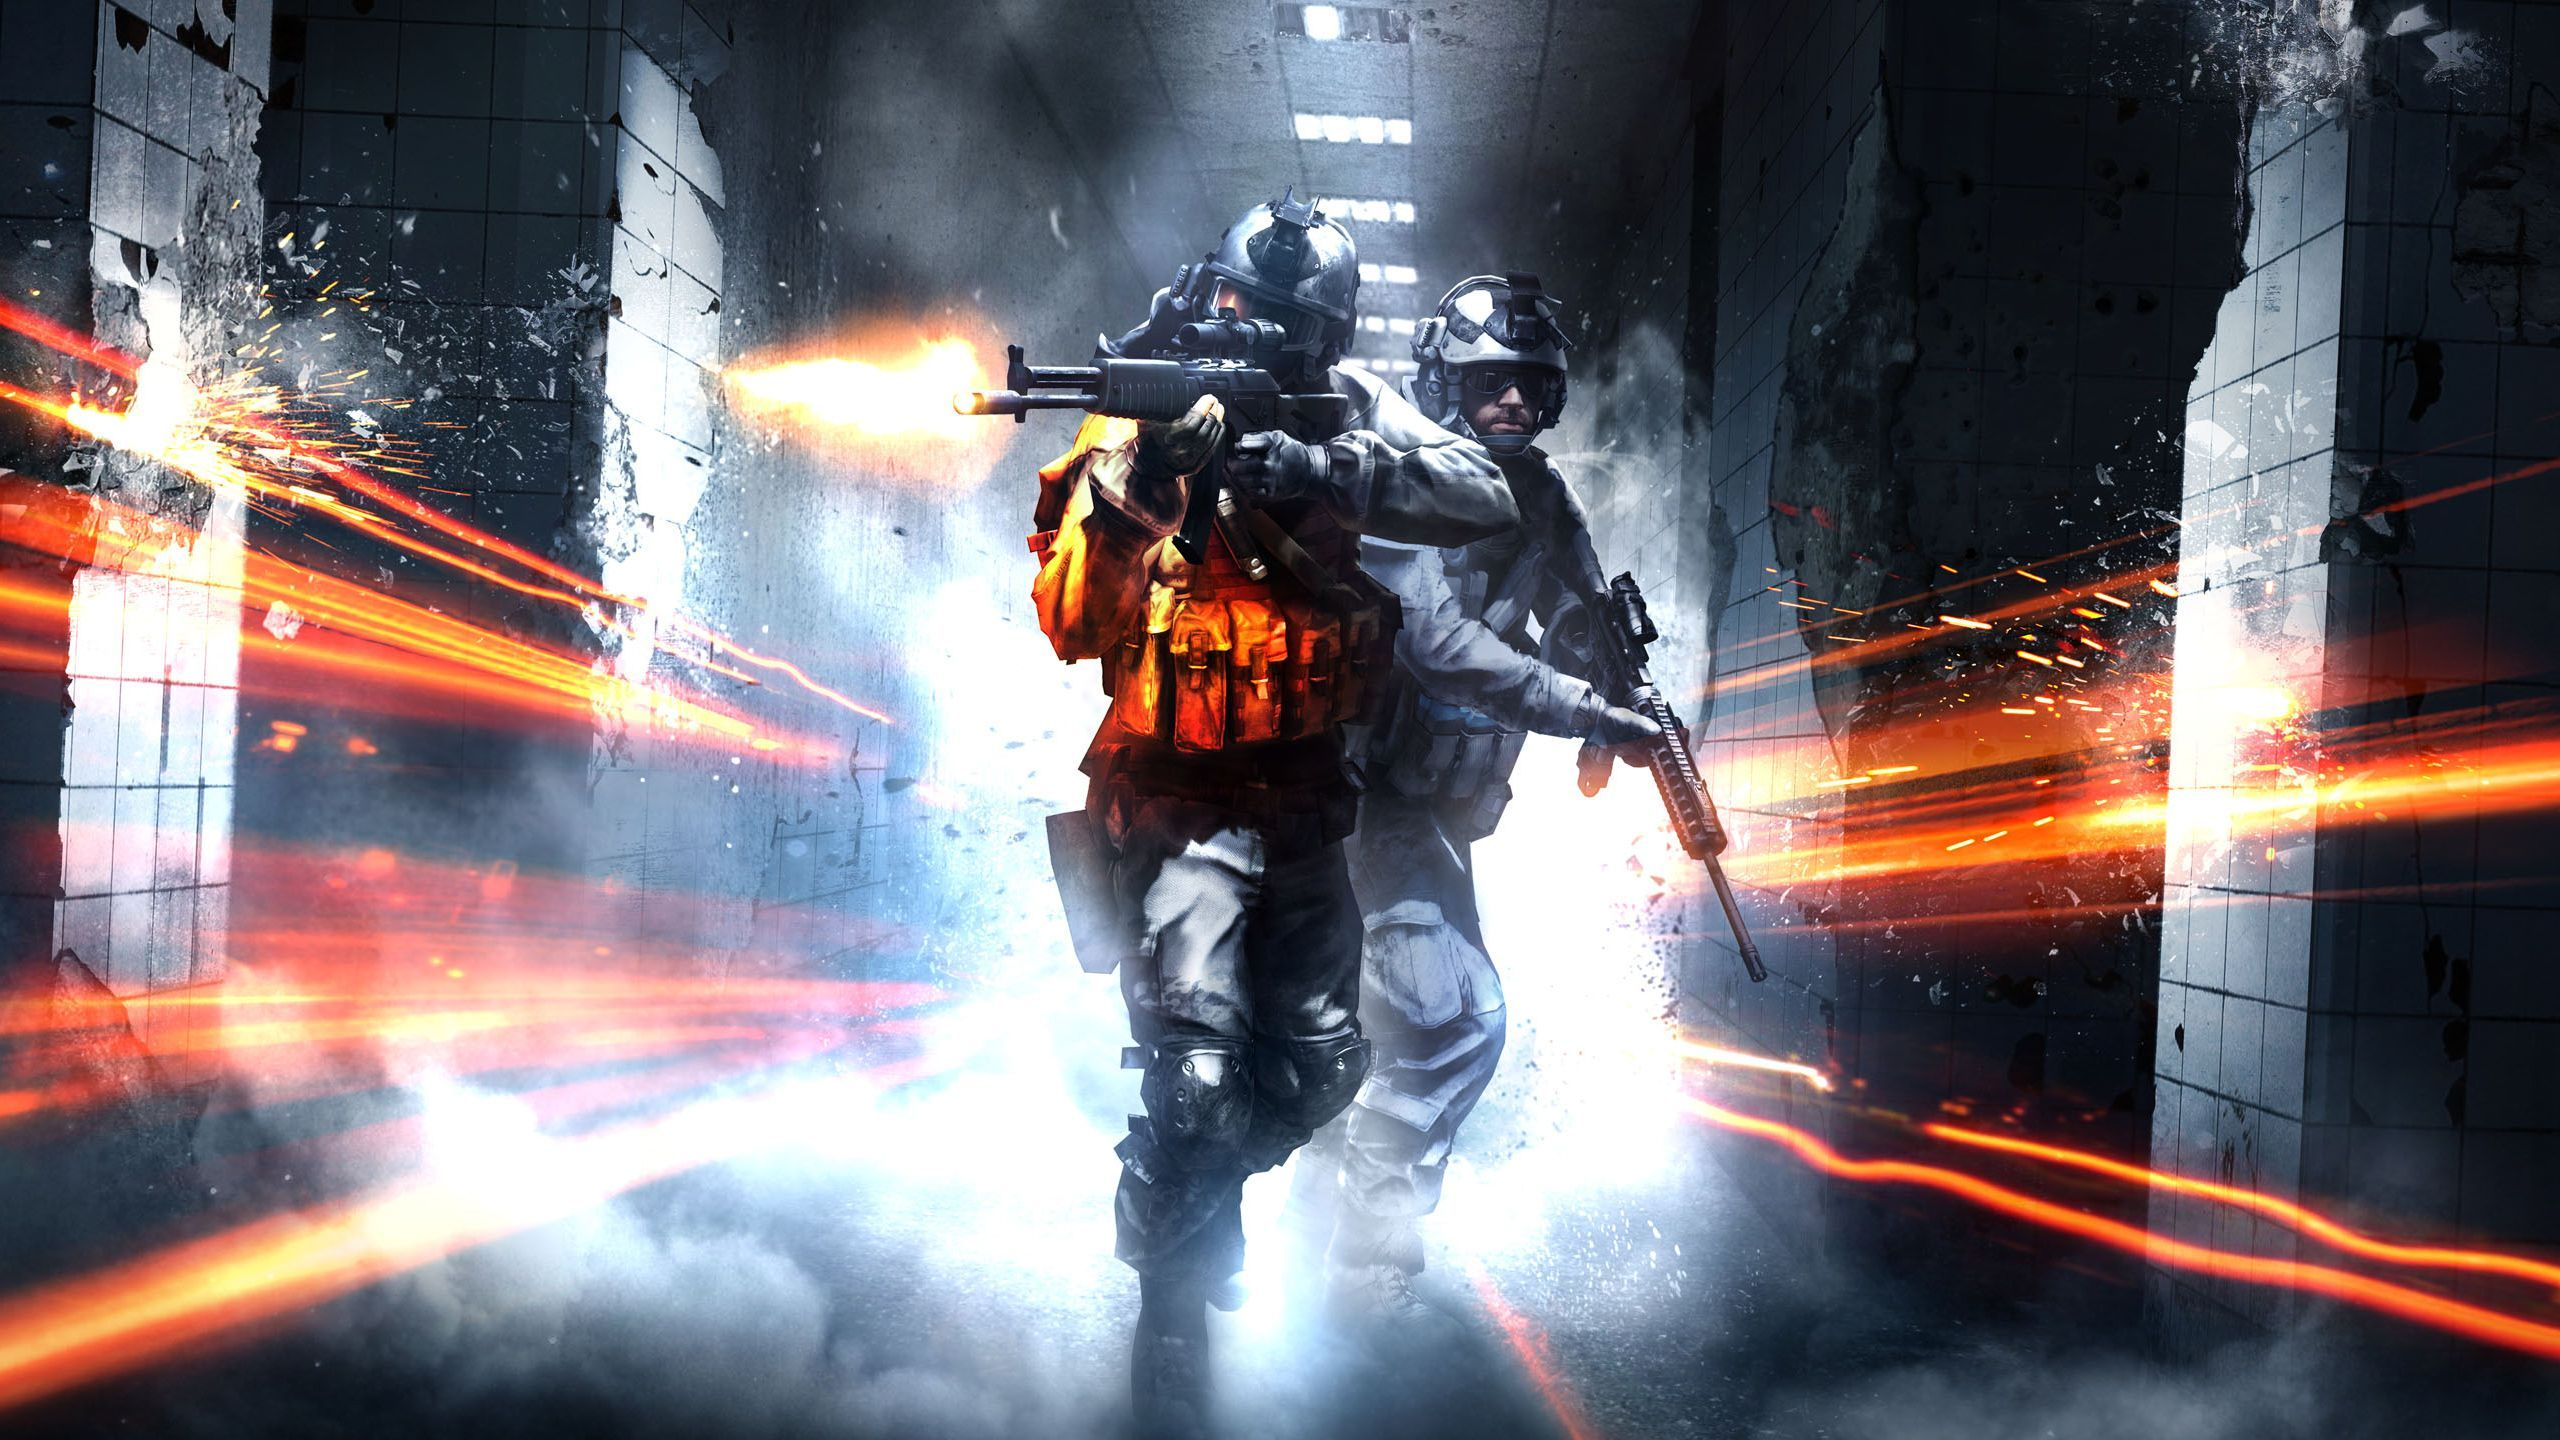 battlefield 4 wallpaper 2560x1440 wallpapersafari